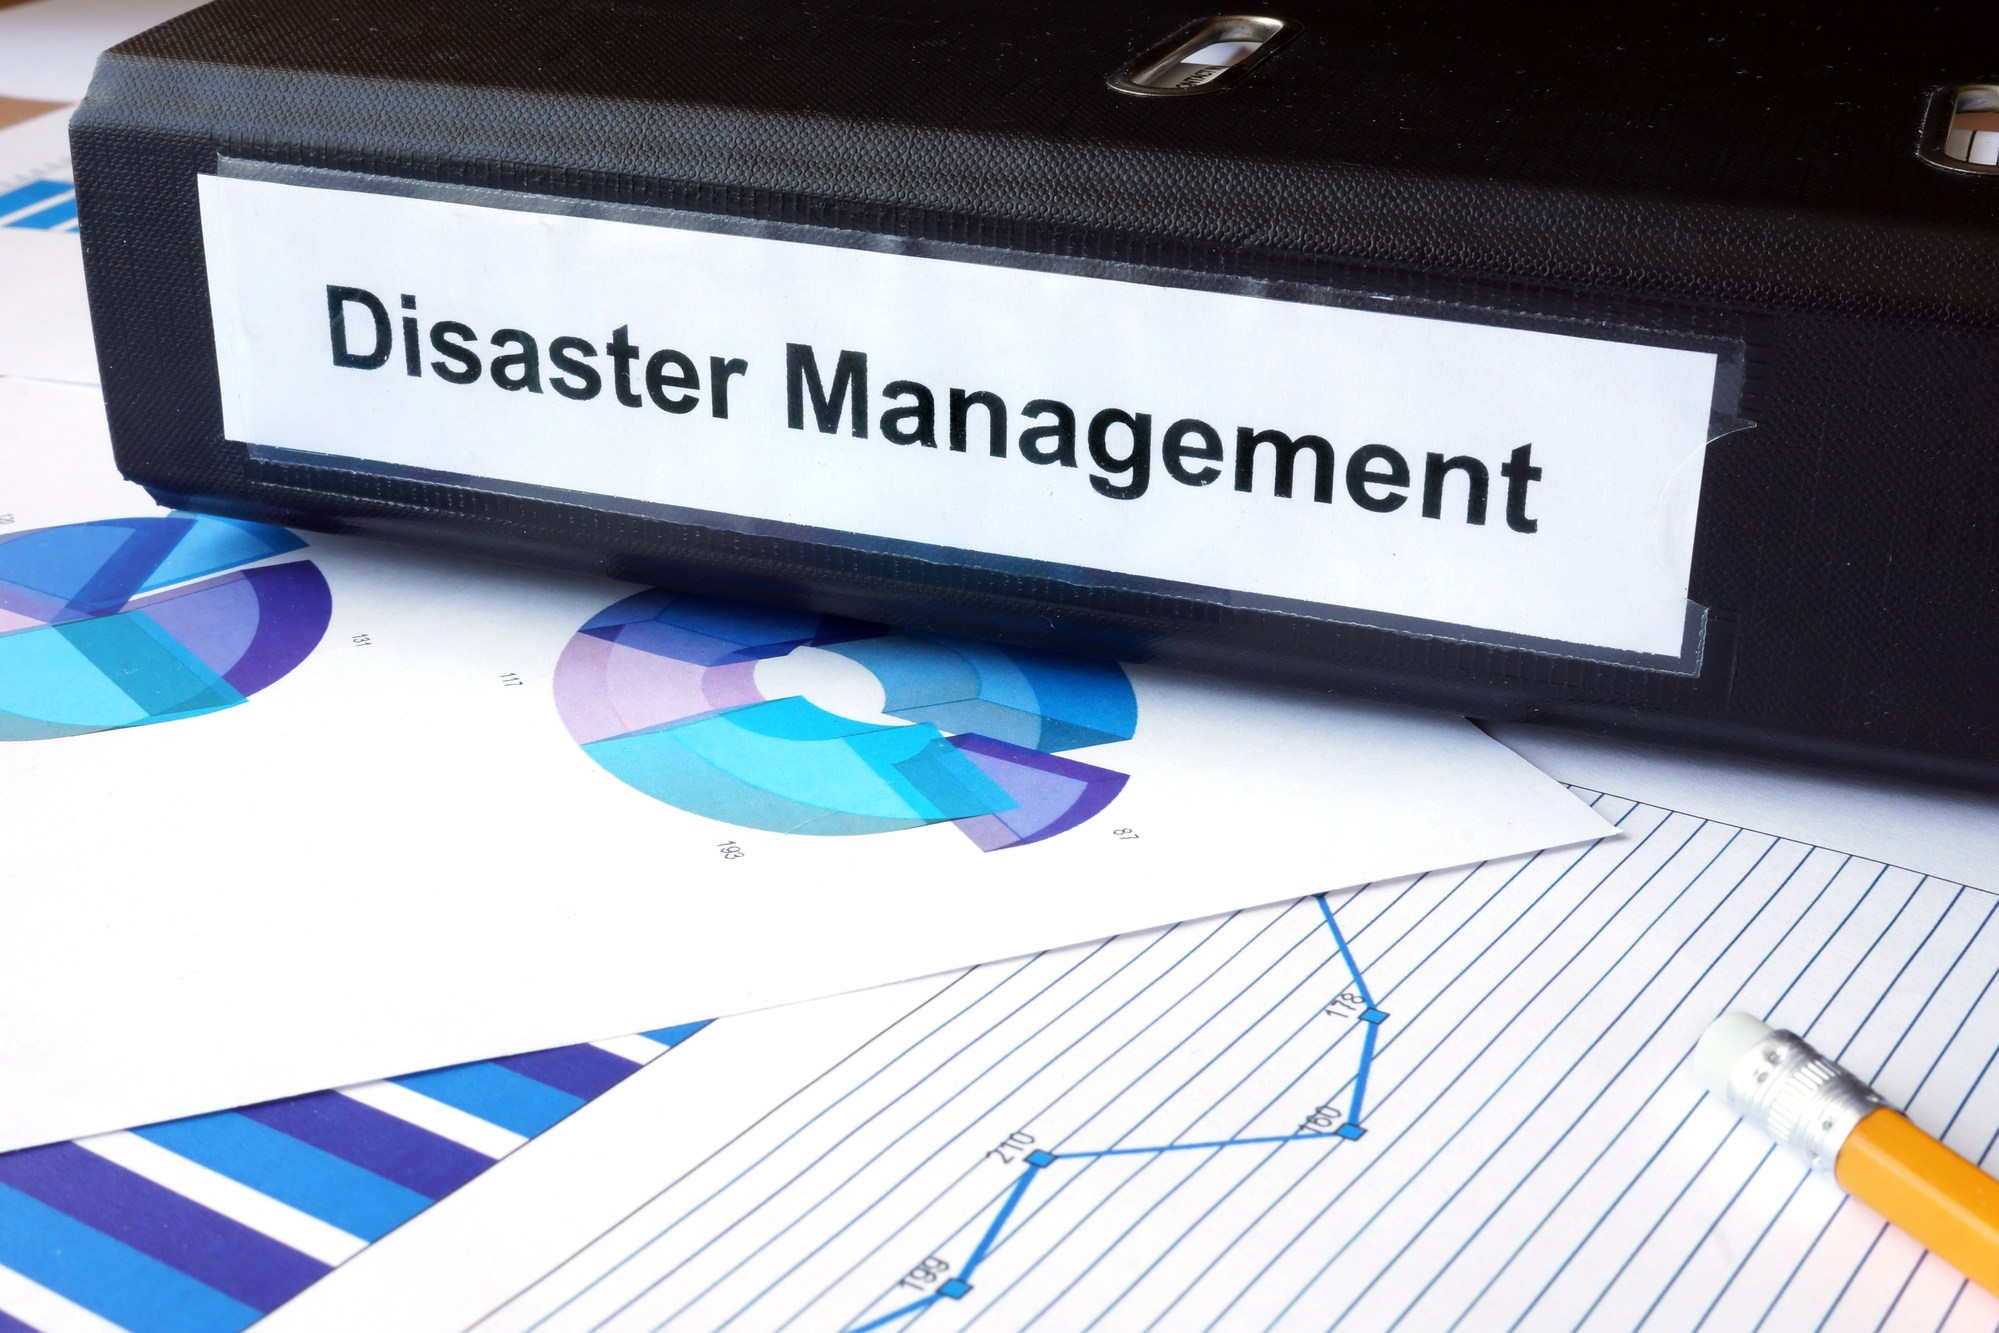 Graphs and file folder with label Disaster Management